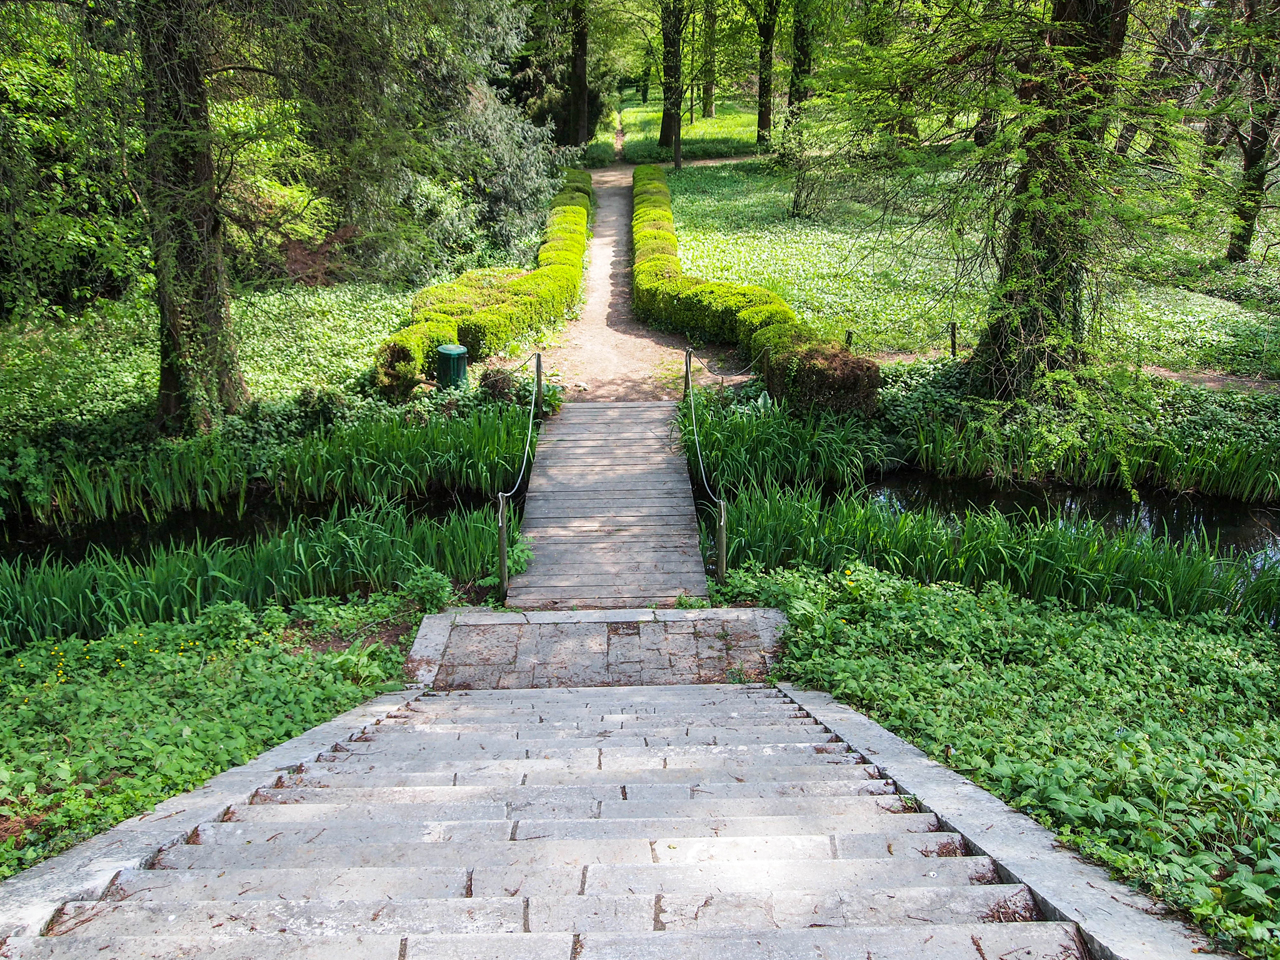 Artificial hill in the garden of Villa Pisani